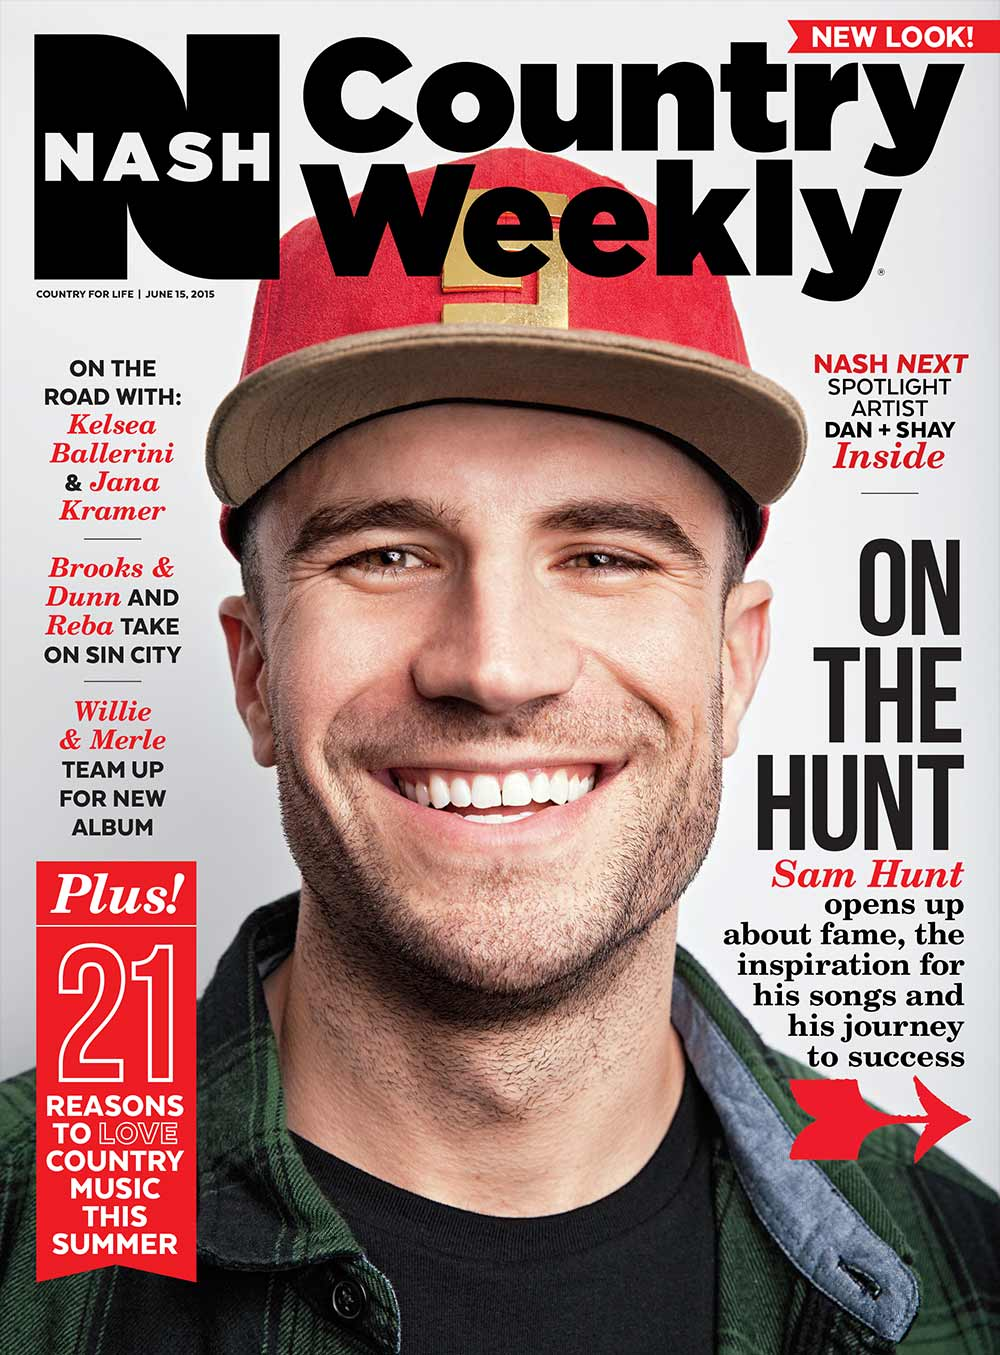 Country Weekly 2015-06-15 Sam Hunt On the Hunt for Success